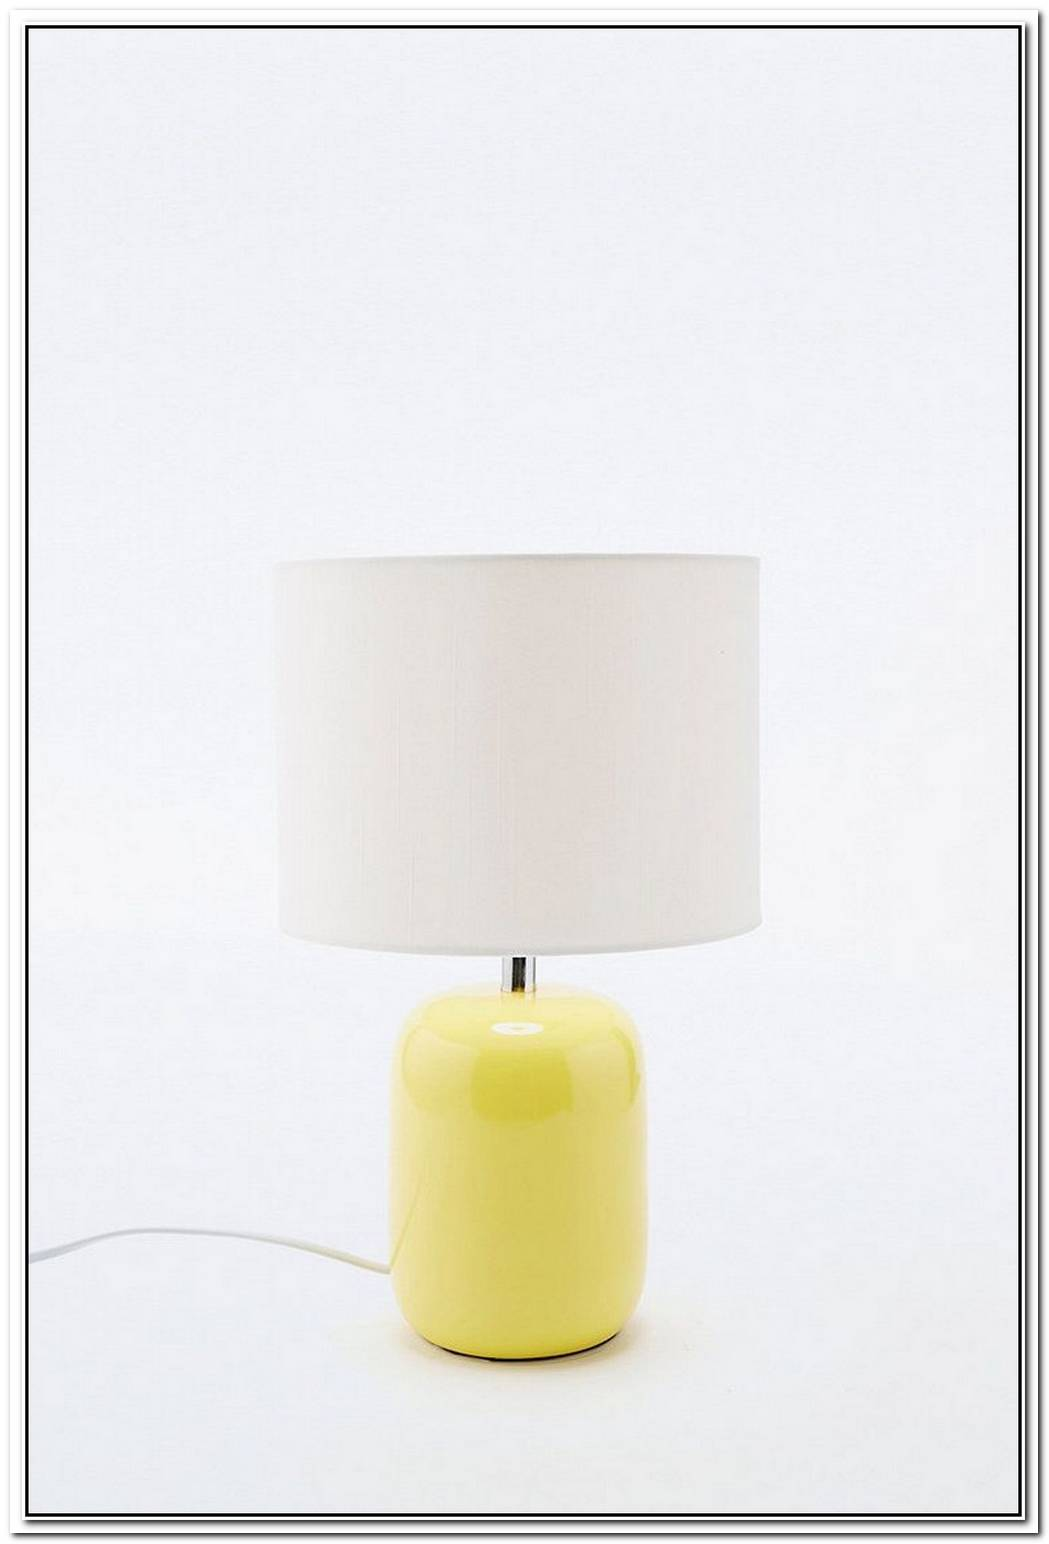 Lemon Yellow Lamp For Your Desk